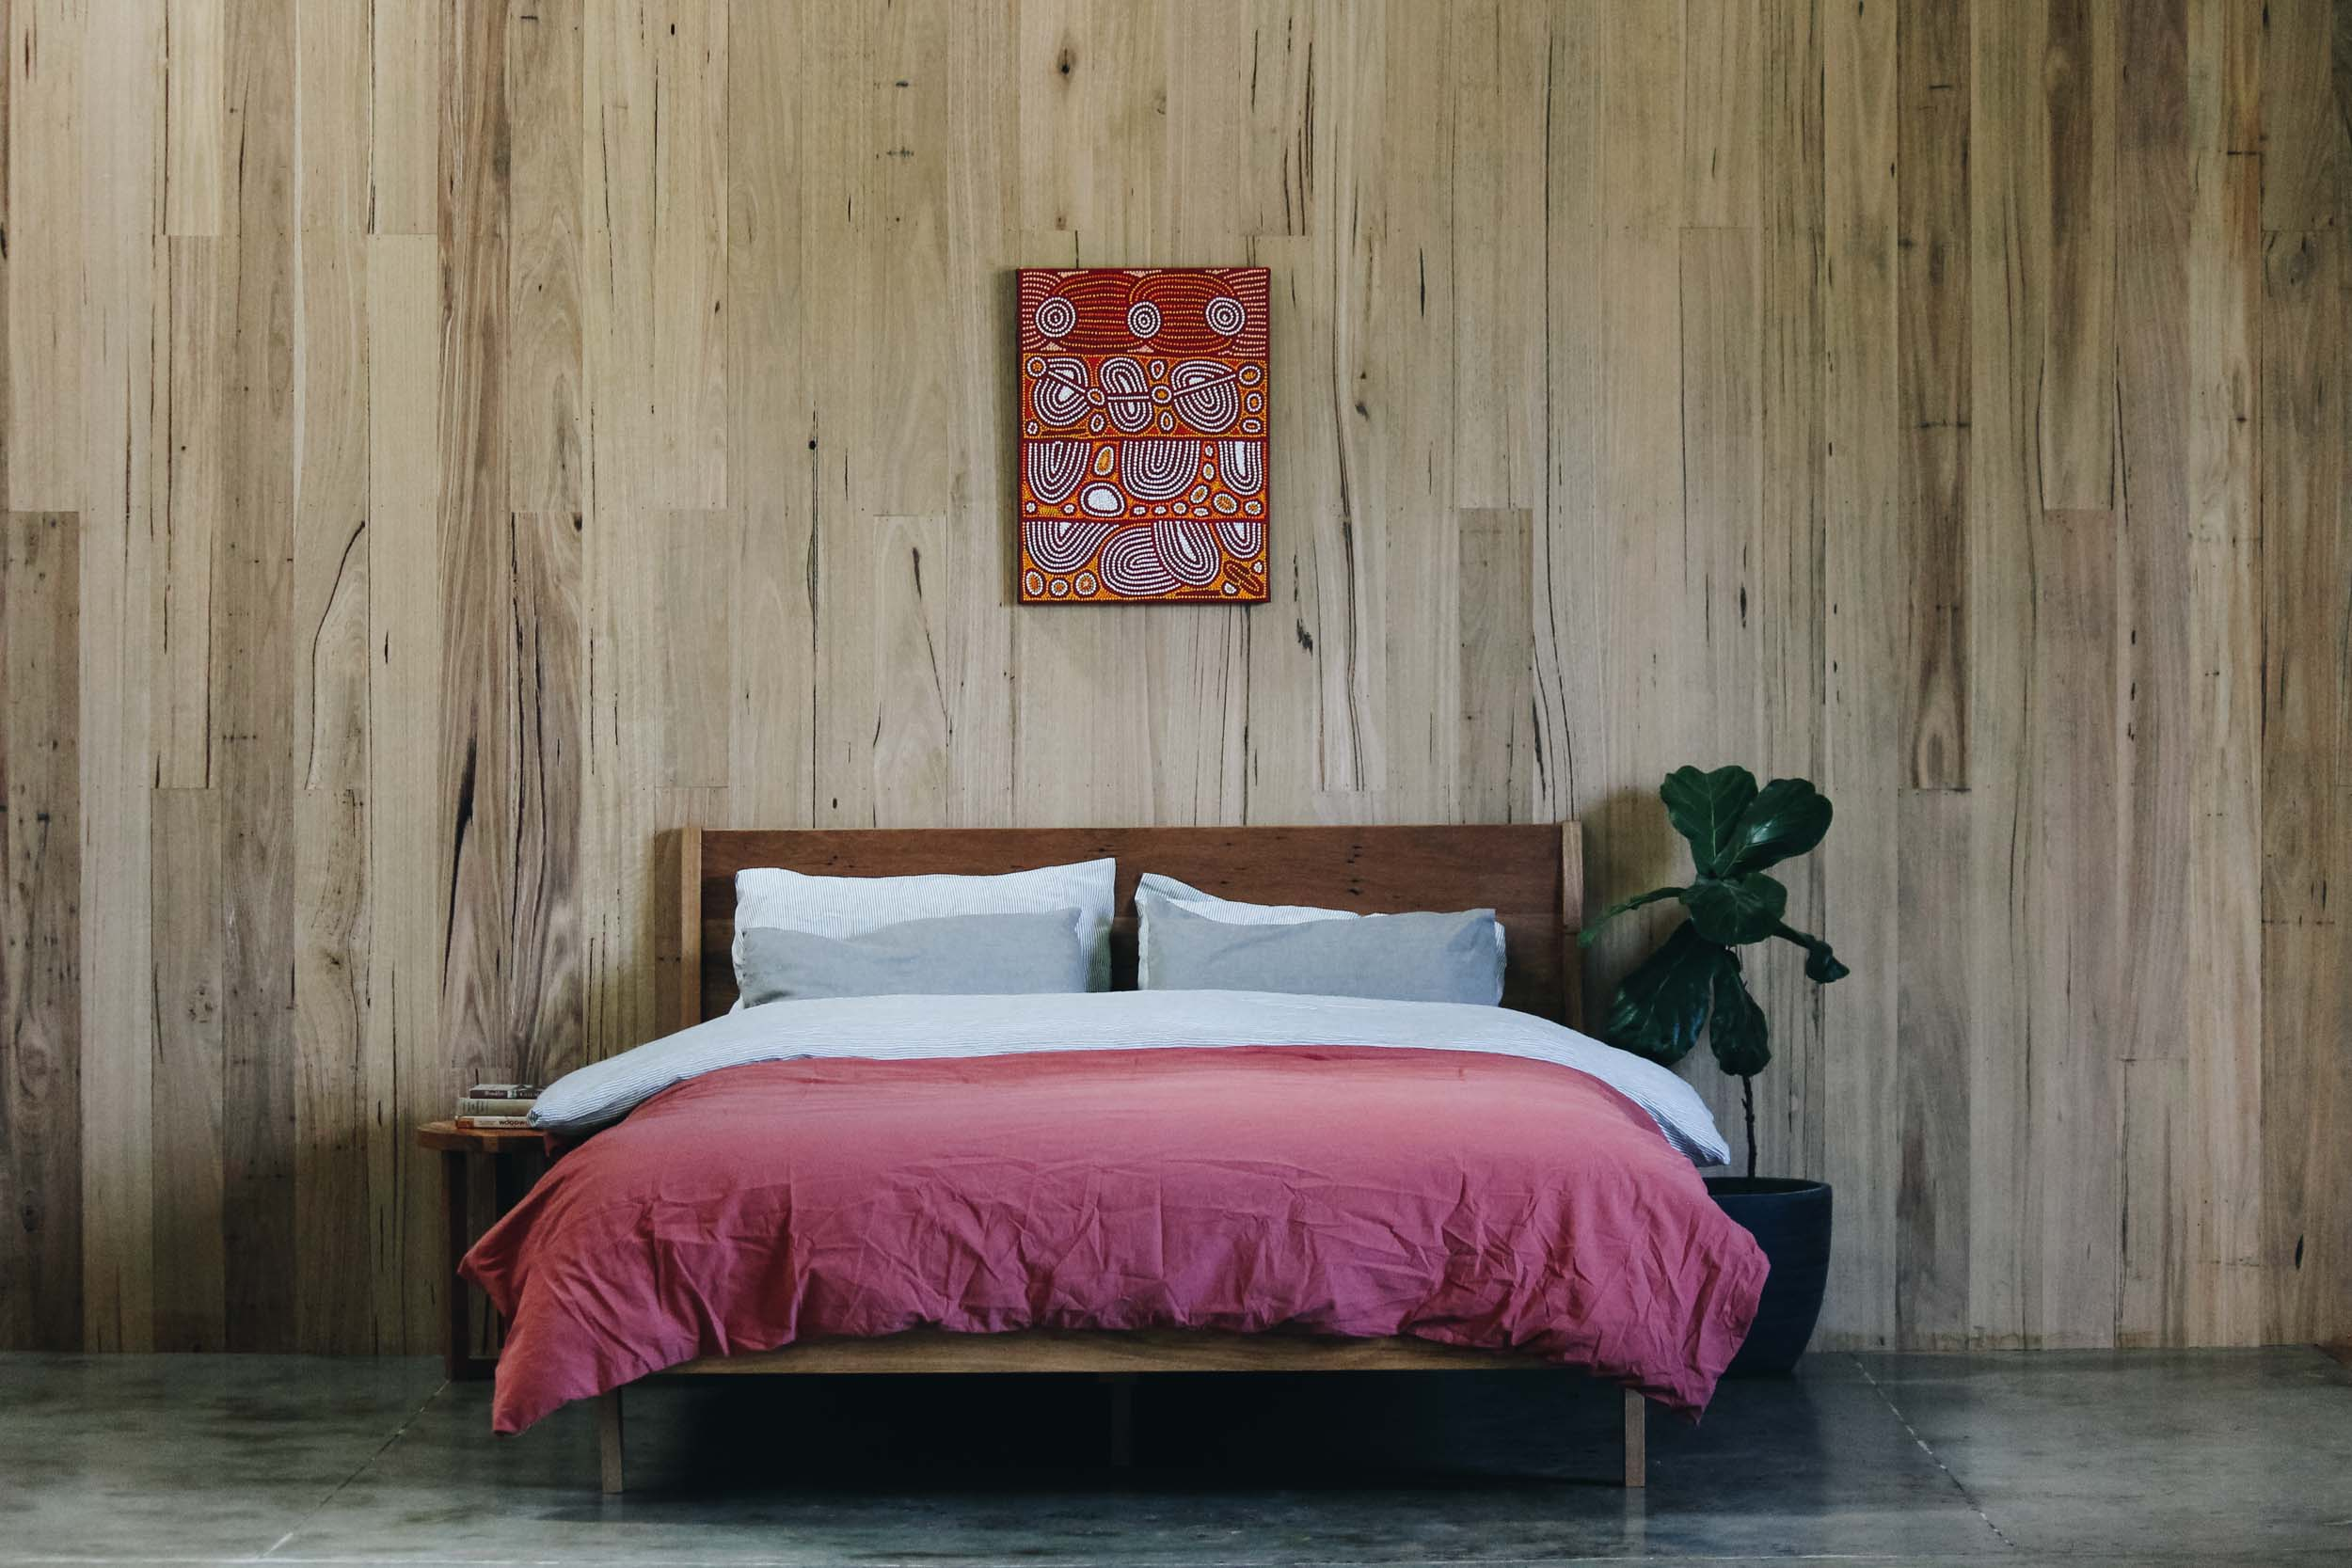 Al and Imo Handmade - Recycled Timber Custom Mod Bed - Melbourne-24.jpg